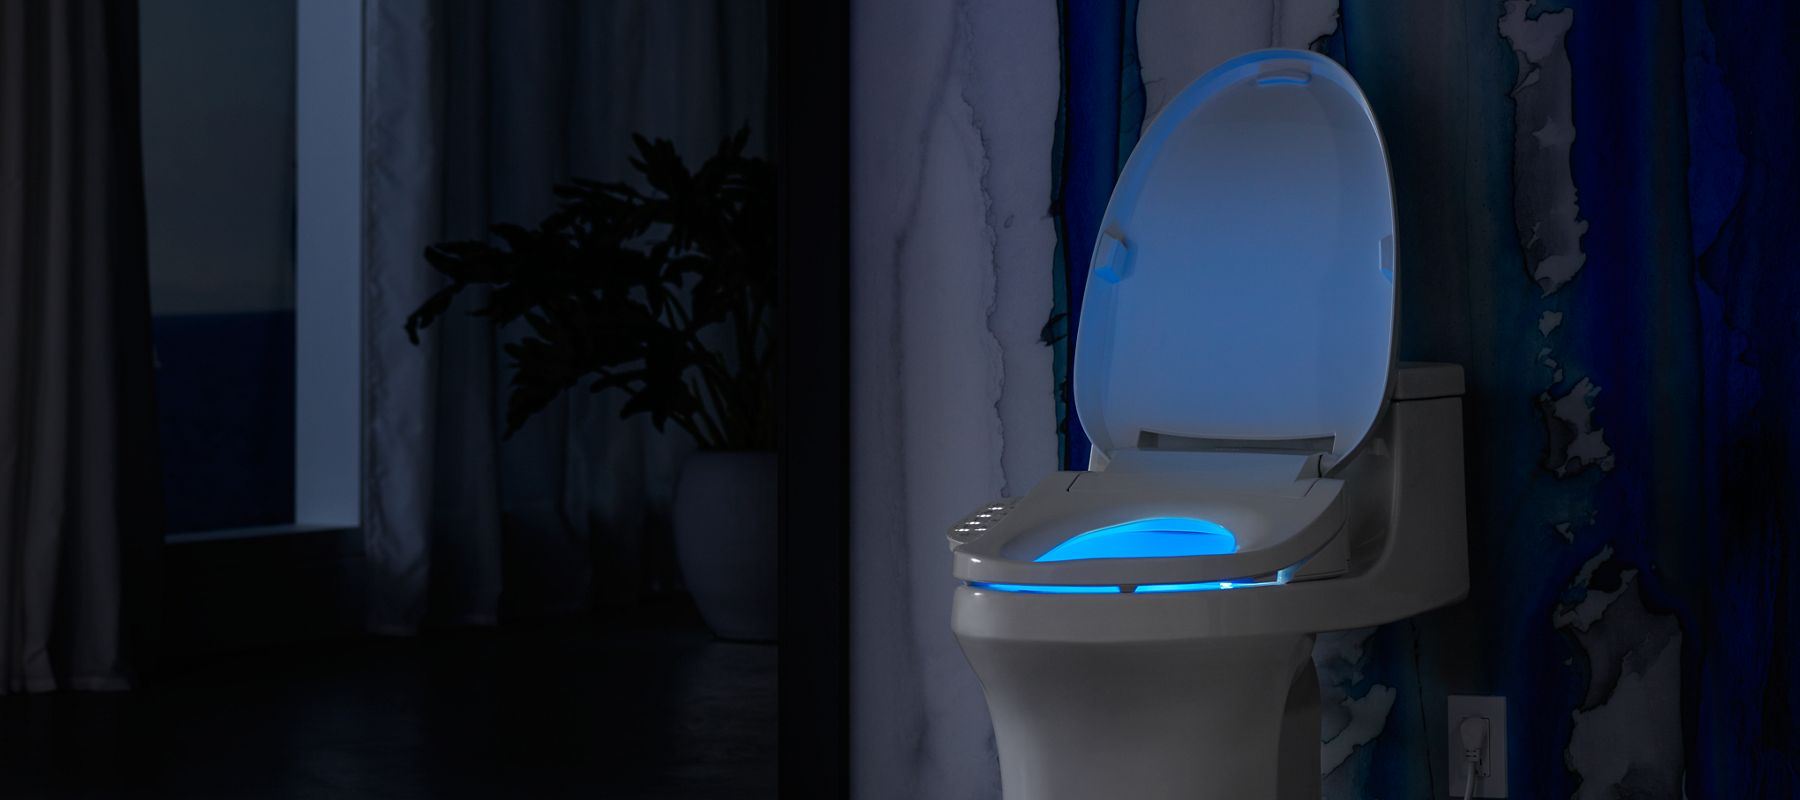 Sensational Elongated Toilet Seats Bathroom Kohler Dailytribune Chair Design For Home Dailytribuneorg